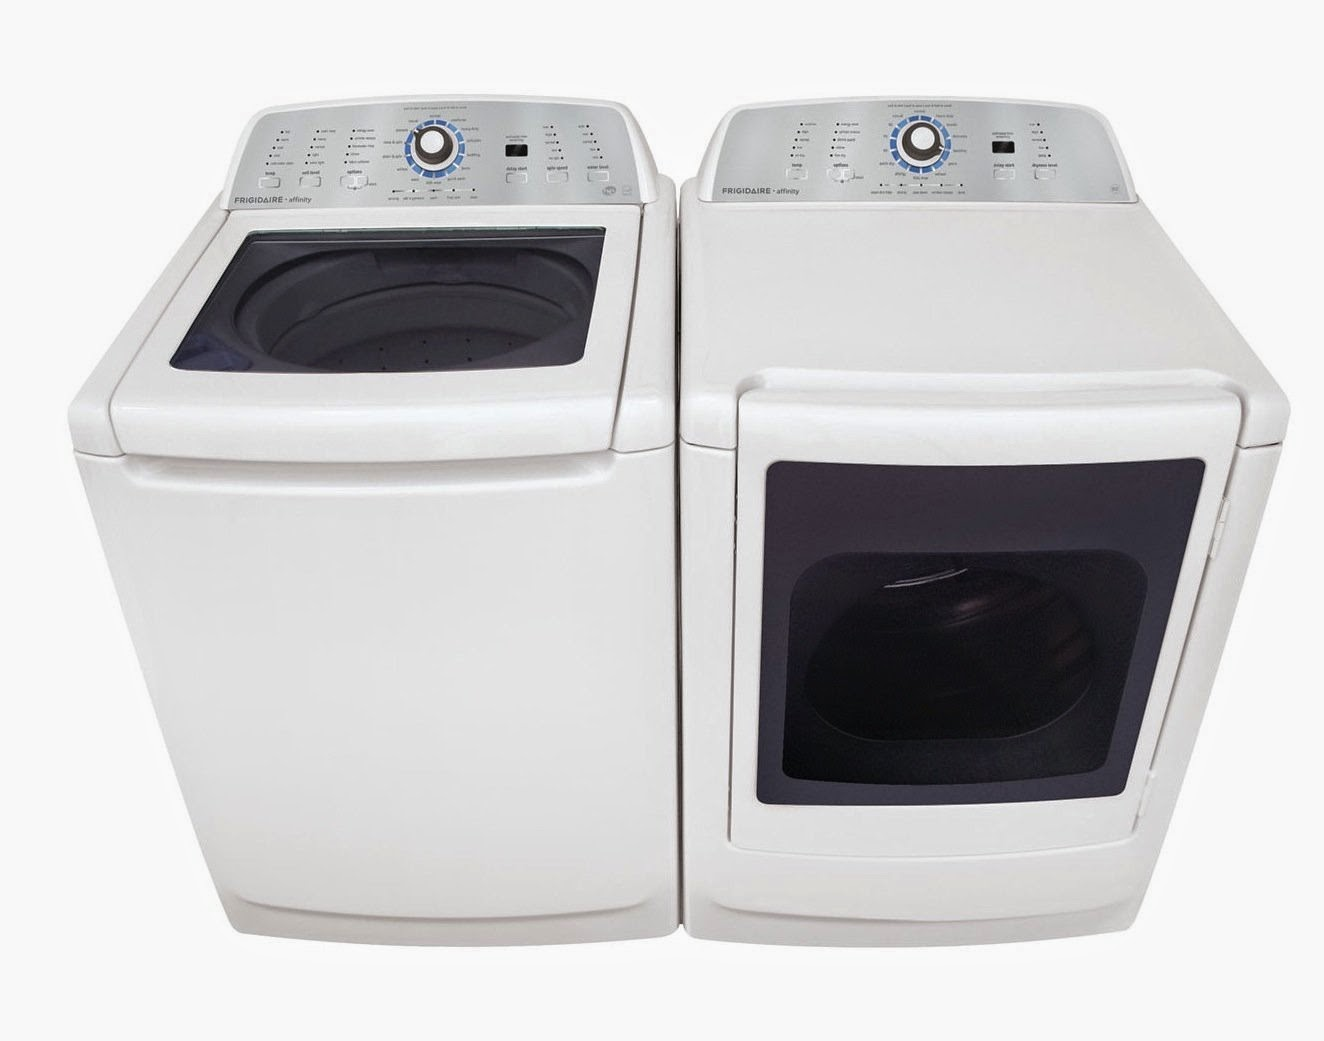 Washer And Dryer Sets On Sale Frigidaire Washer And Dryer